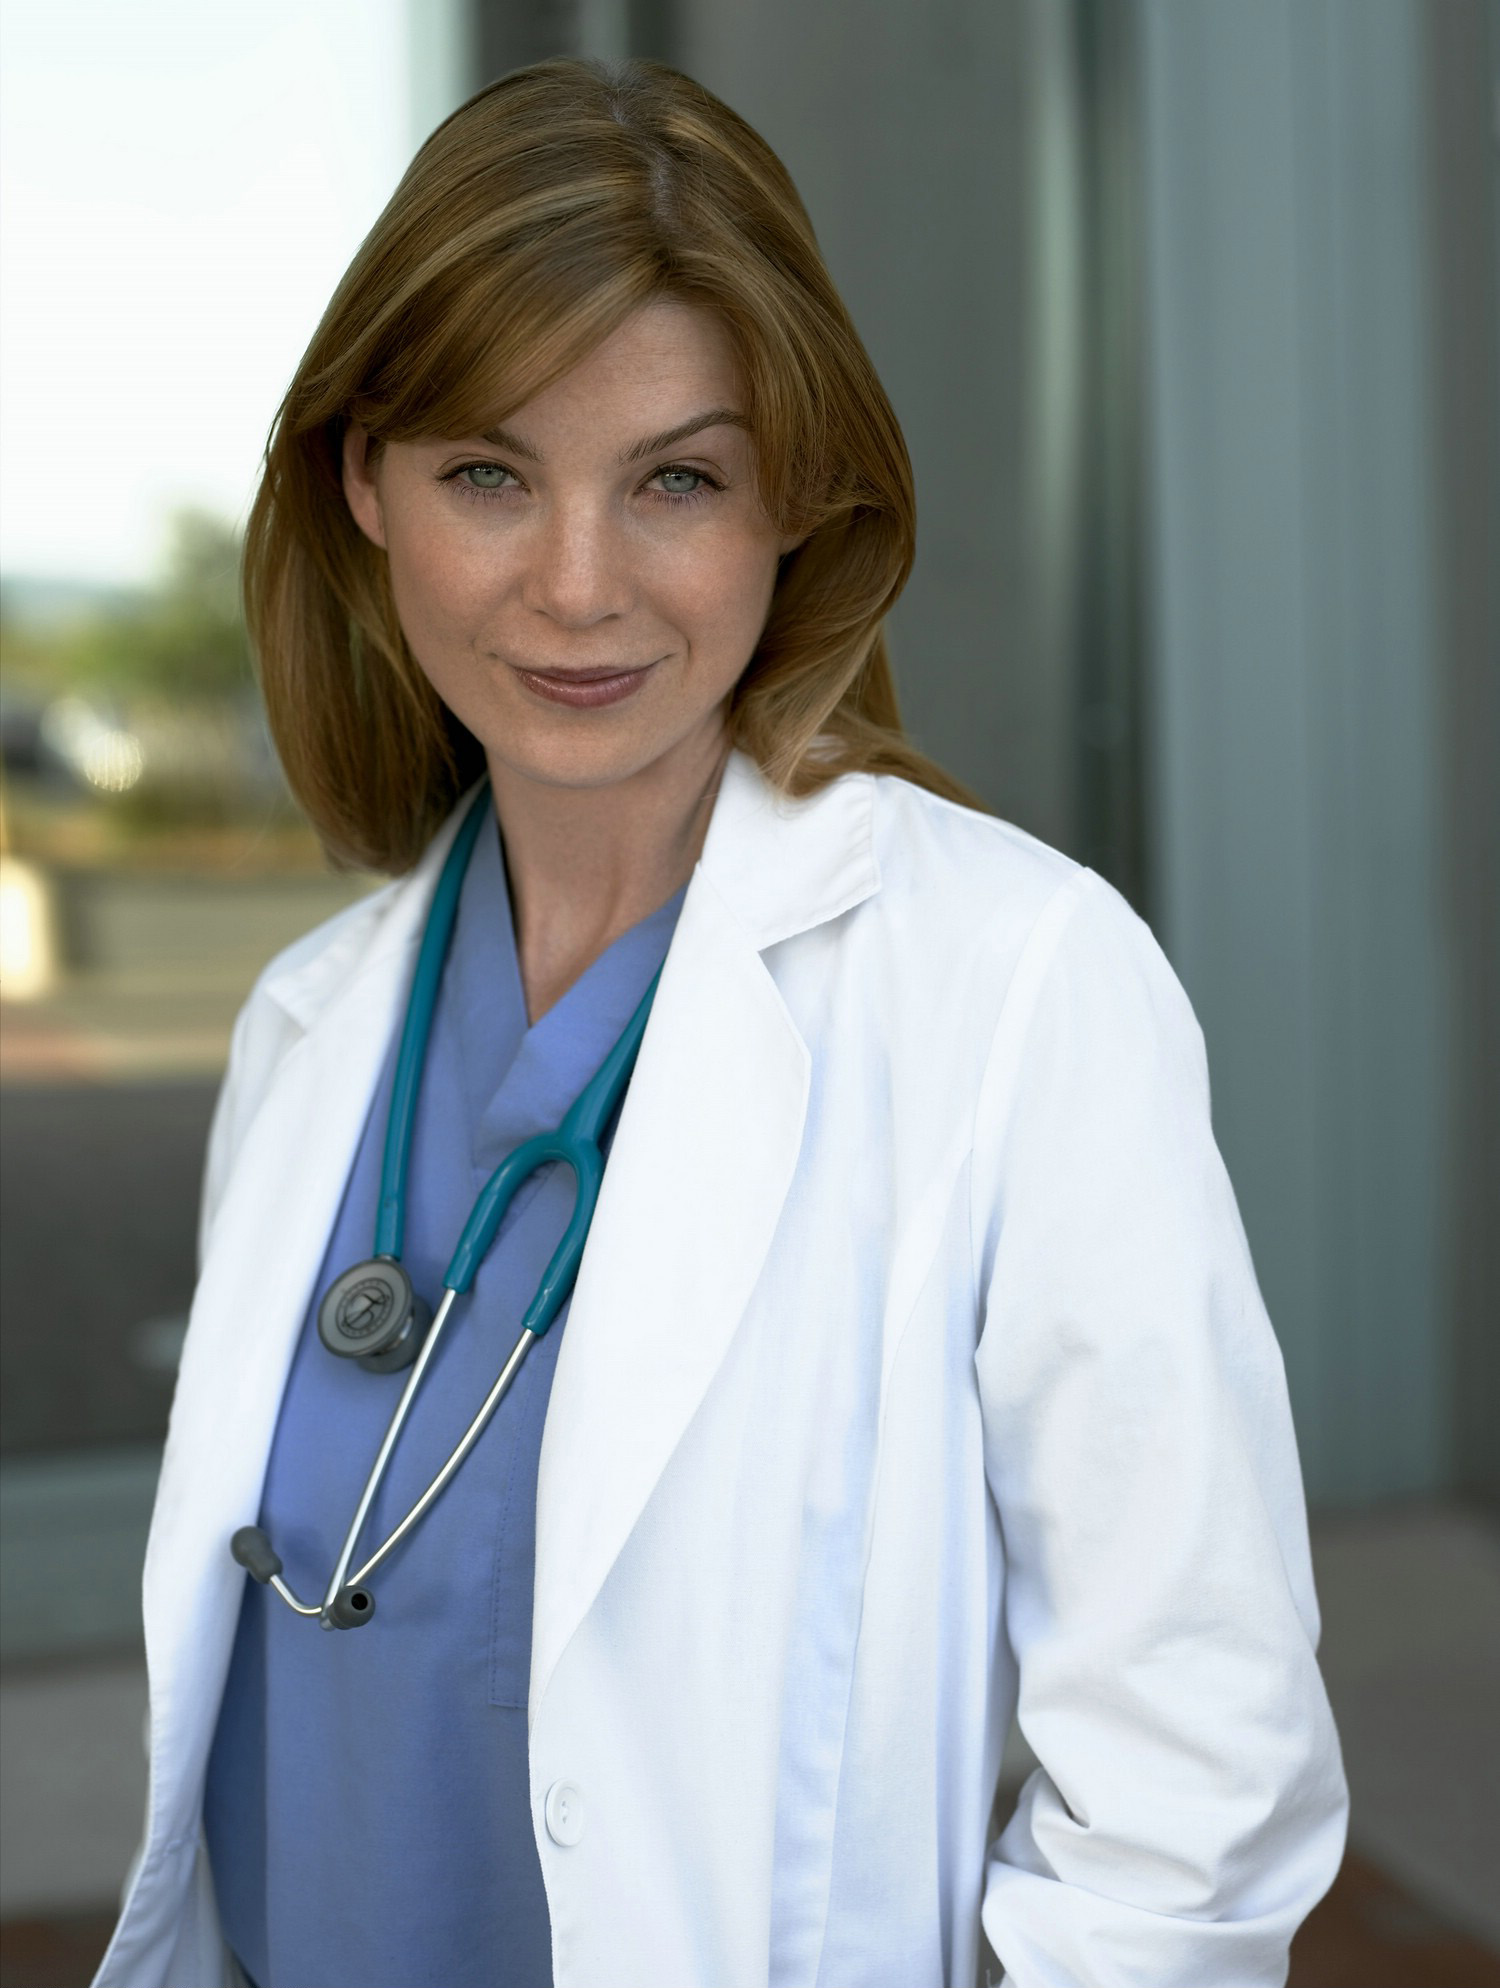 greys anat meredith makes - HD 1500×1988